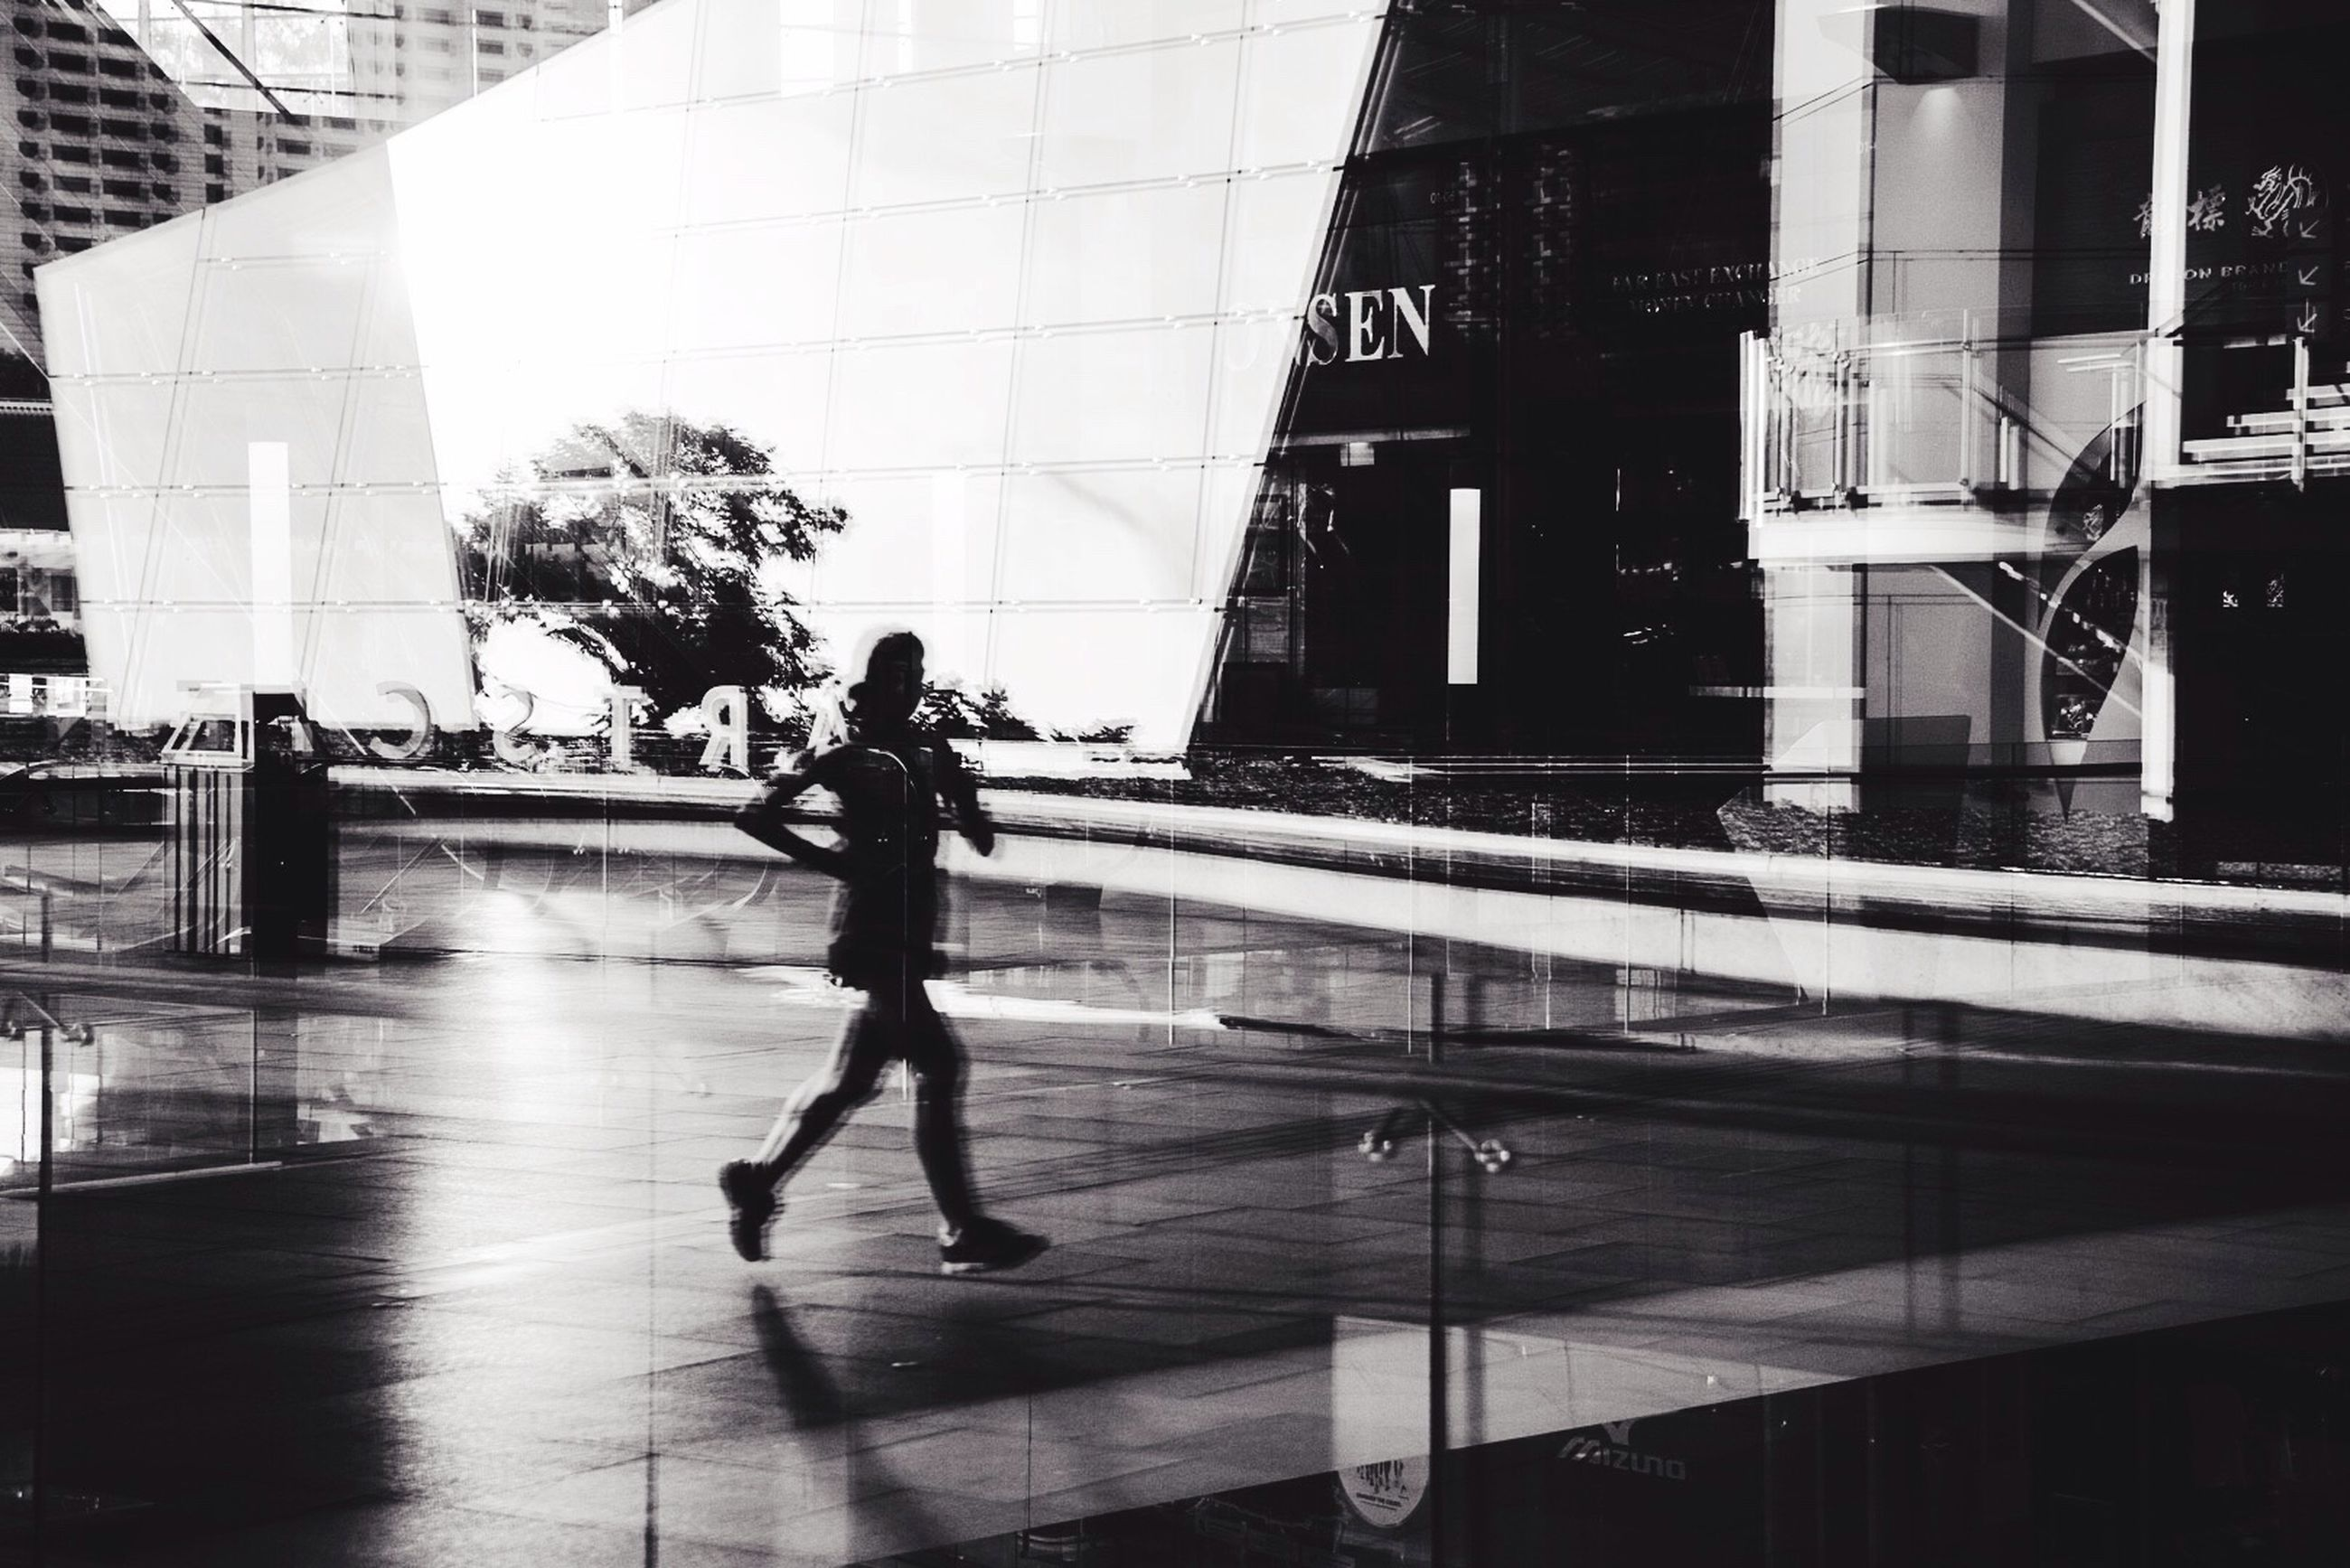 architecture, building exterior, built structure, city, full length, walking, lifestyles, men, city life, building, street, reflection, modern, person, leisure activity, on the move, shadow, transportation